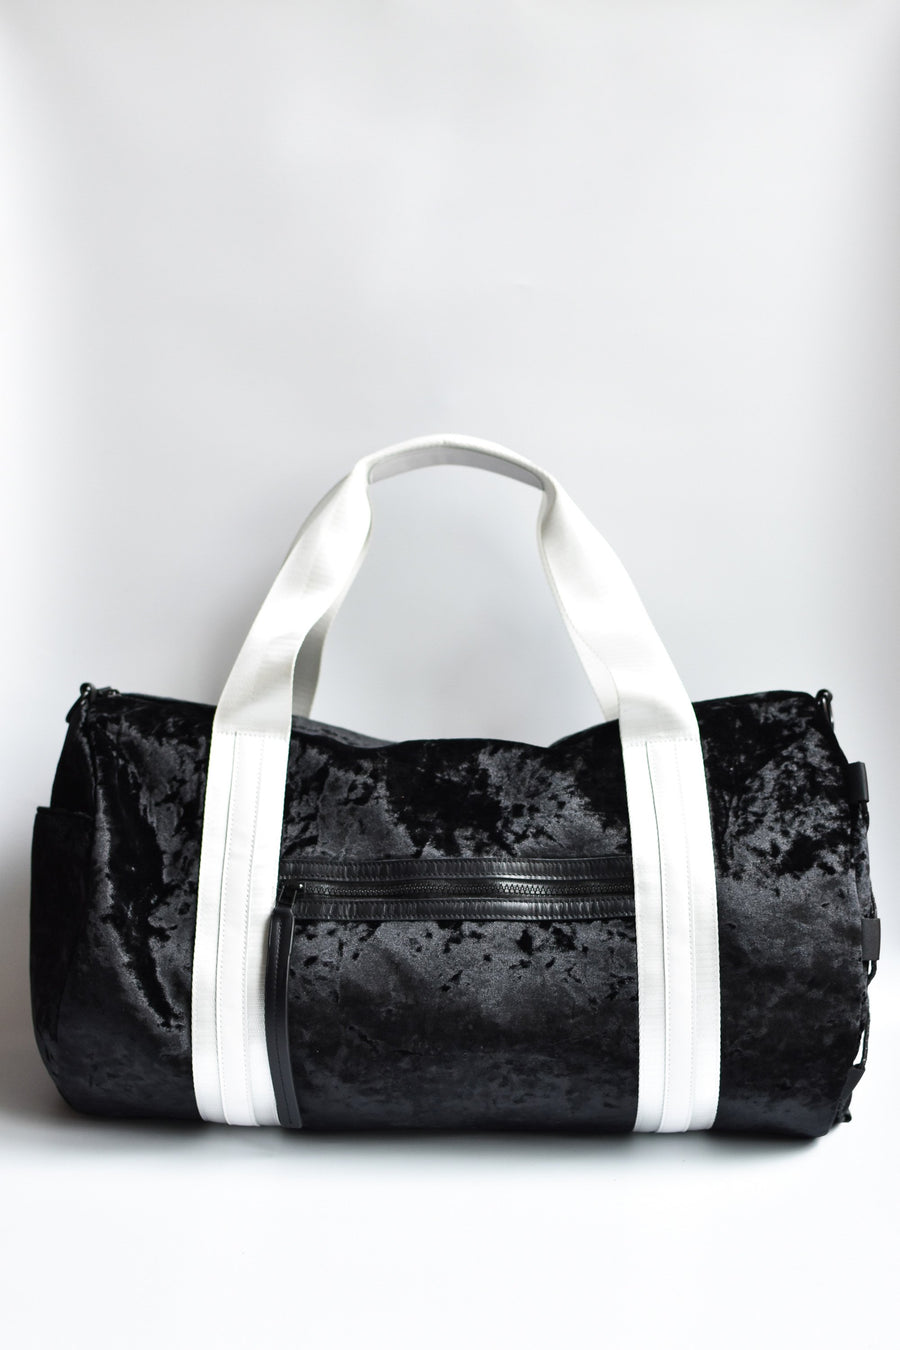 Black velour duffel bag with white straps and leather details.